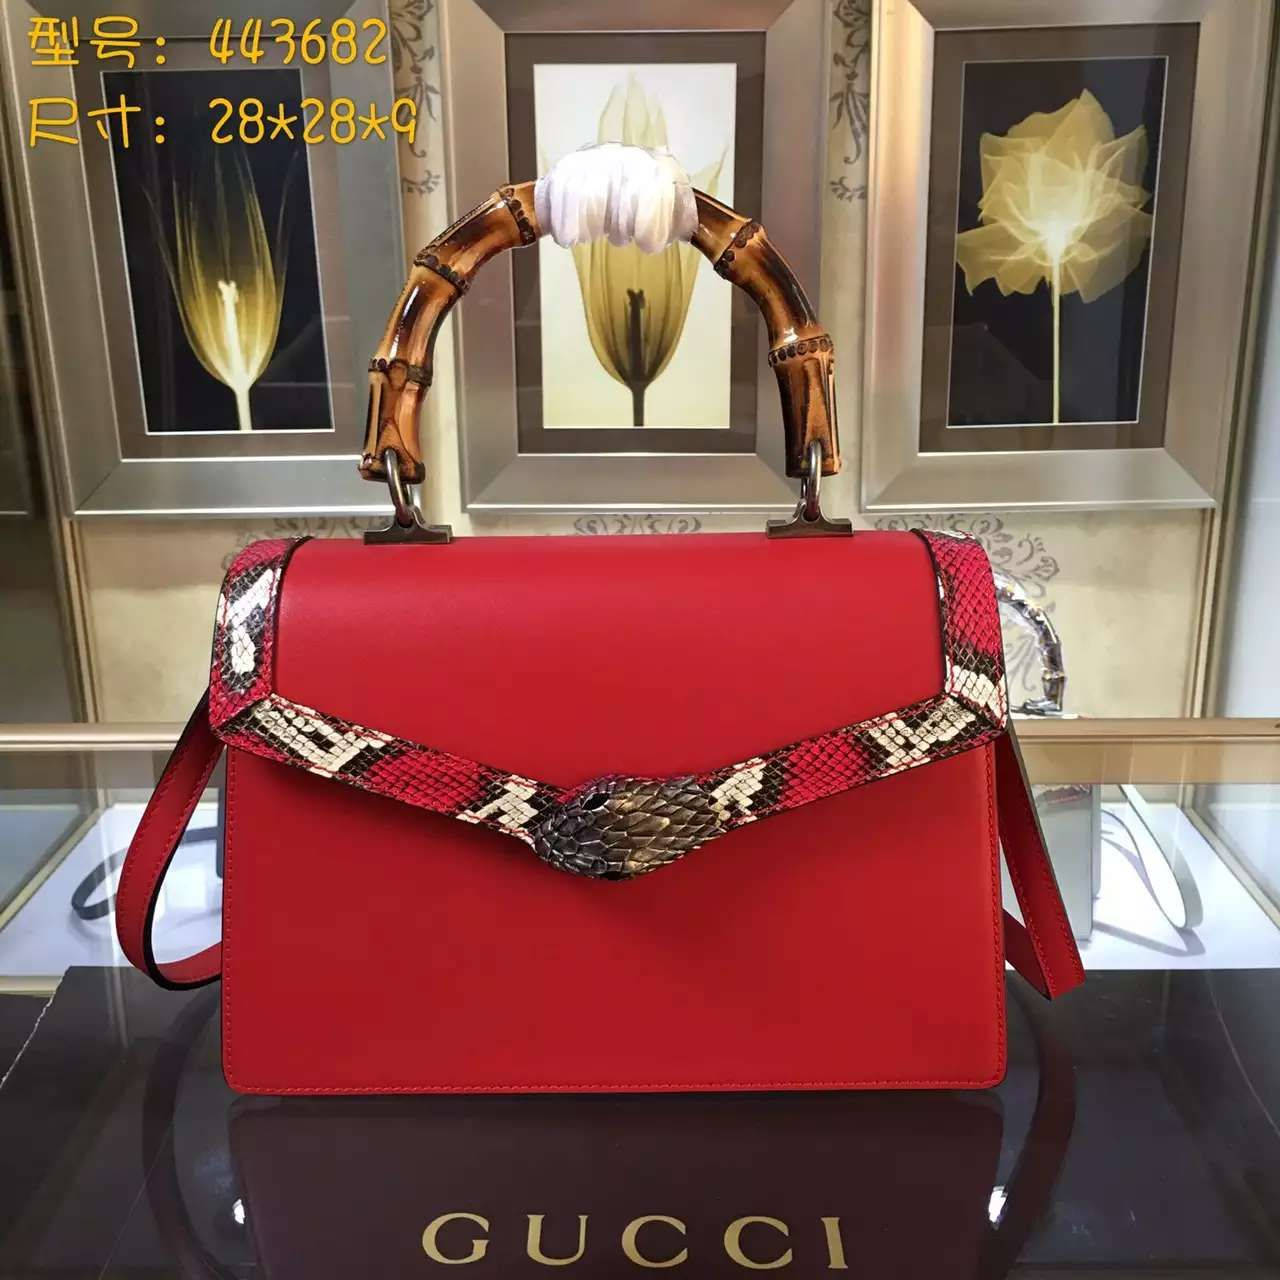 gucci bags canada. gucci bag, id : 61729(forsale:a@yybags.com), com canada, official, where to buy gucci, italian leather handbags, 睾賵鬲卮賷, bags on canada